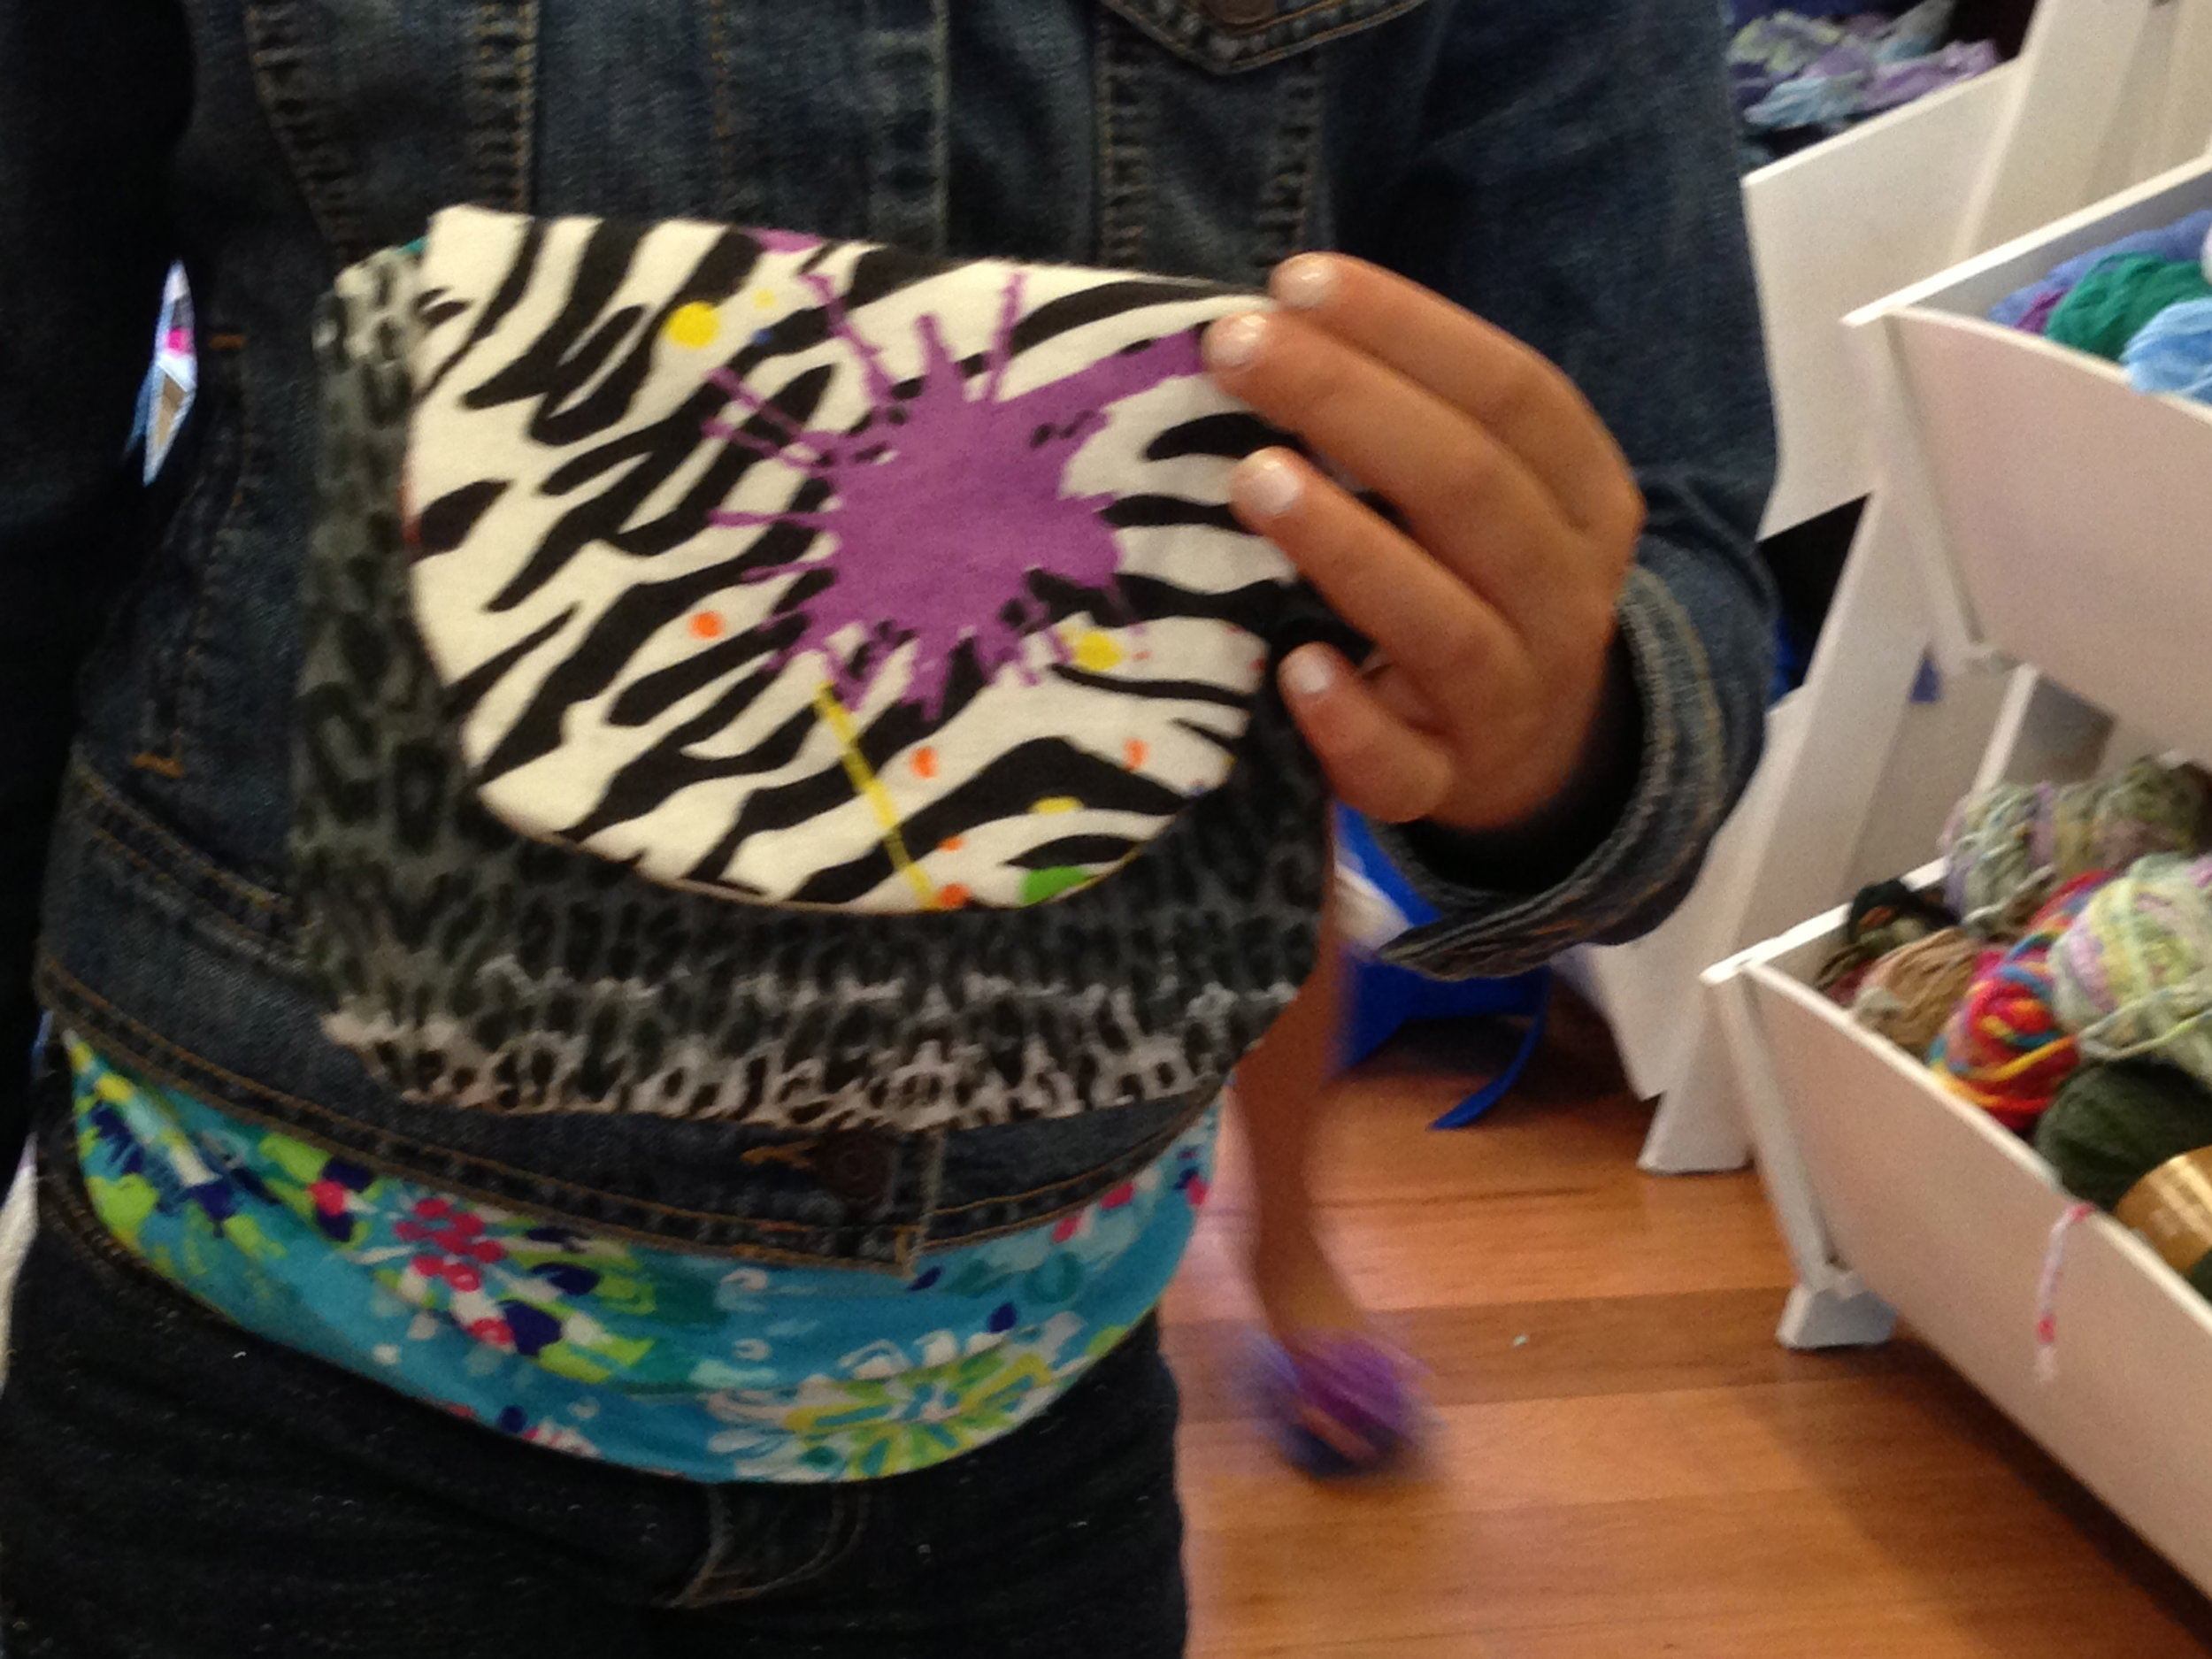 3rd grade bag designed by student - complete with zipper sewn in by hand.